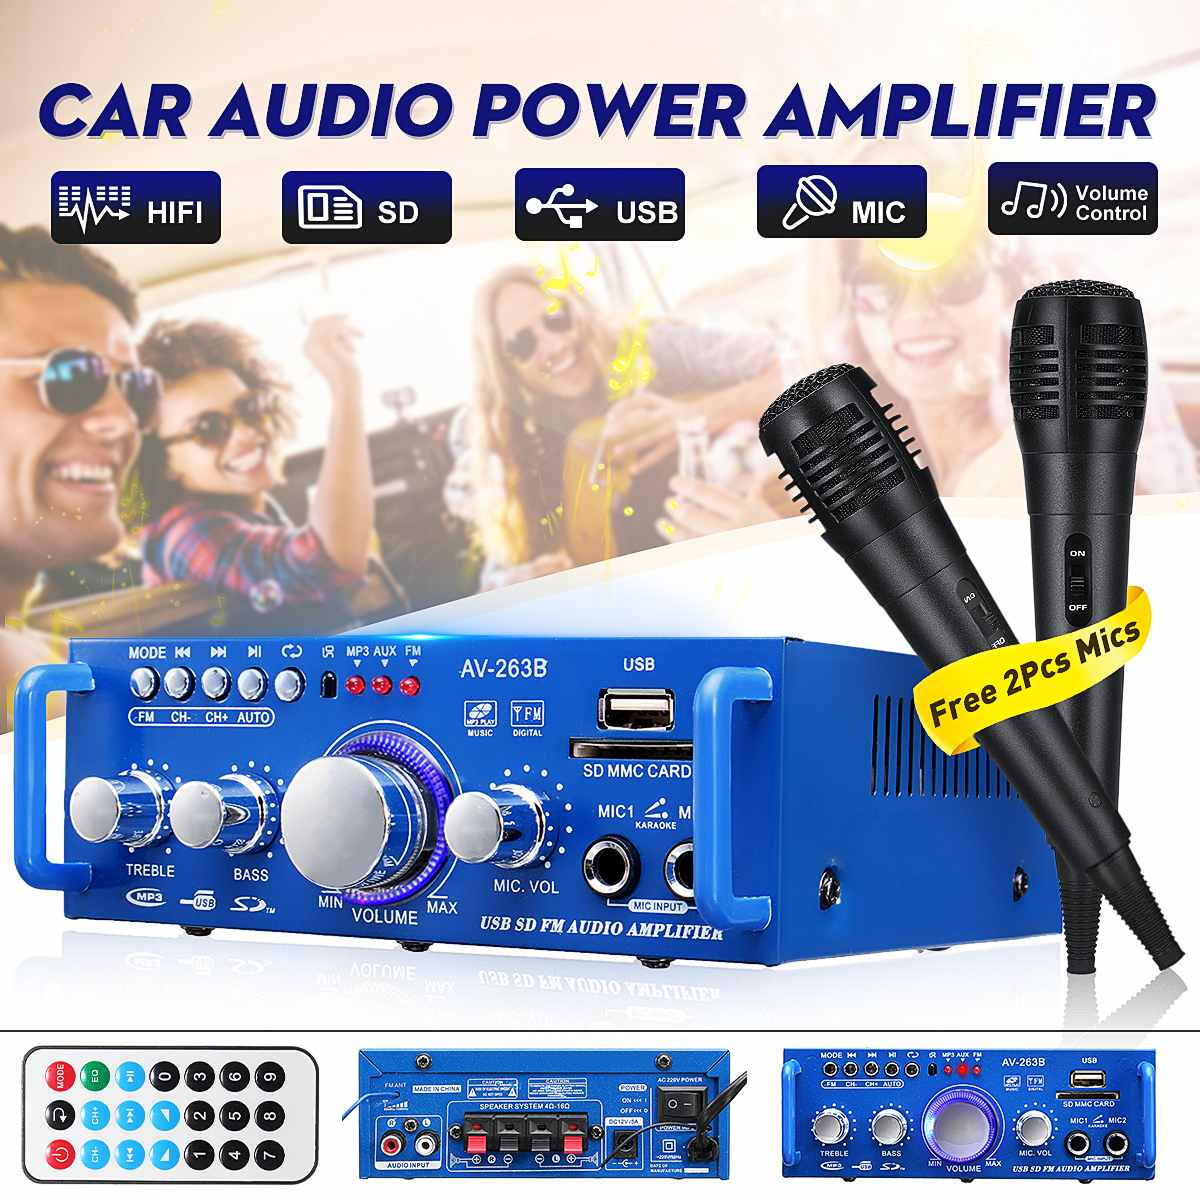 12V/220V 600W HIFI 2CH Car Bluetooth Stereo Power Amplifier Music Player Audio FM Radio Home Theater Amplifiers With Microphones